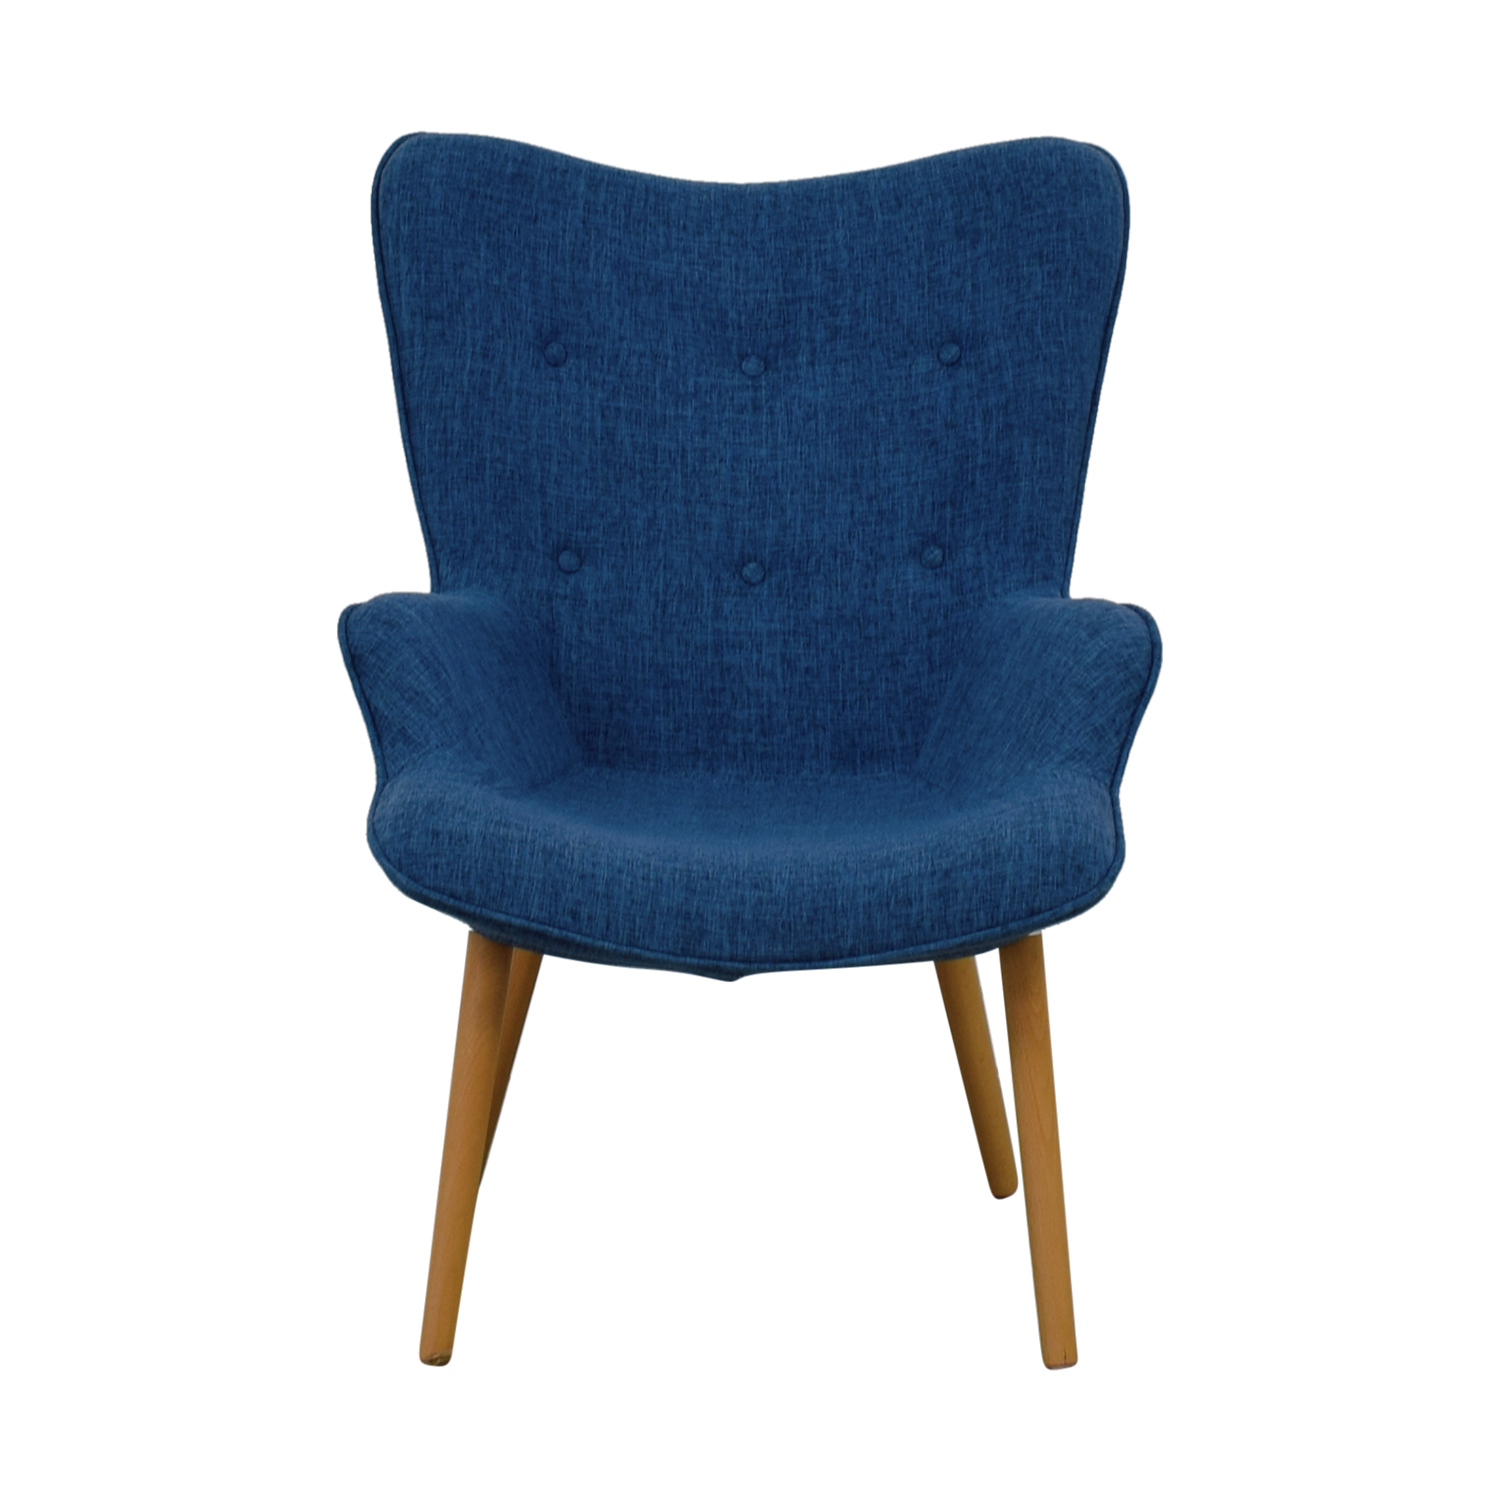 Christopher Knight Home Christopher Knight Home Fayola Blue Tufted Accent Chair for sale